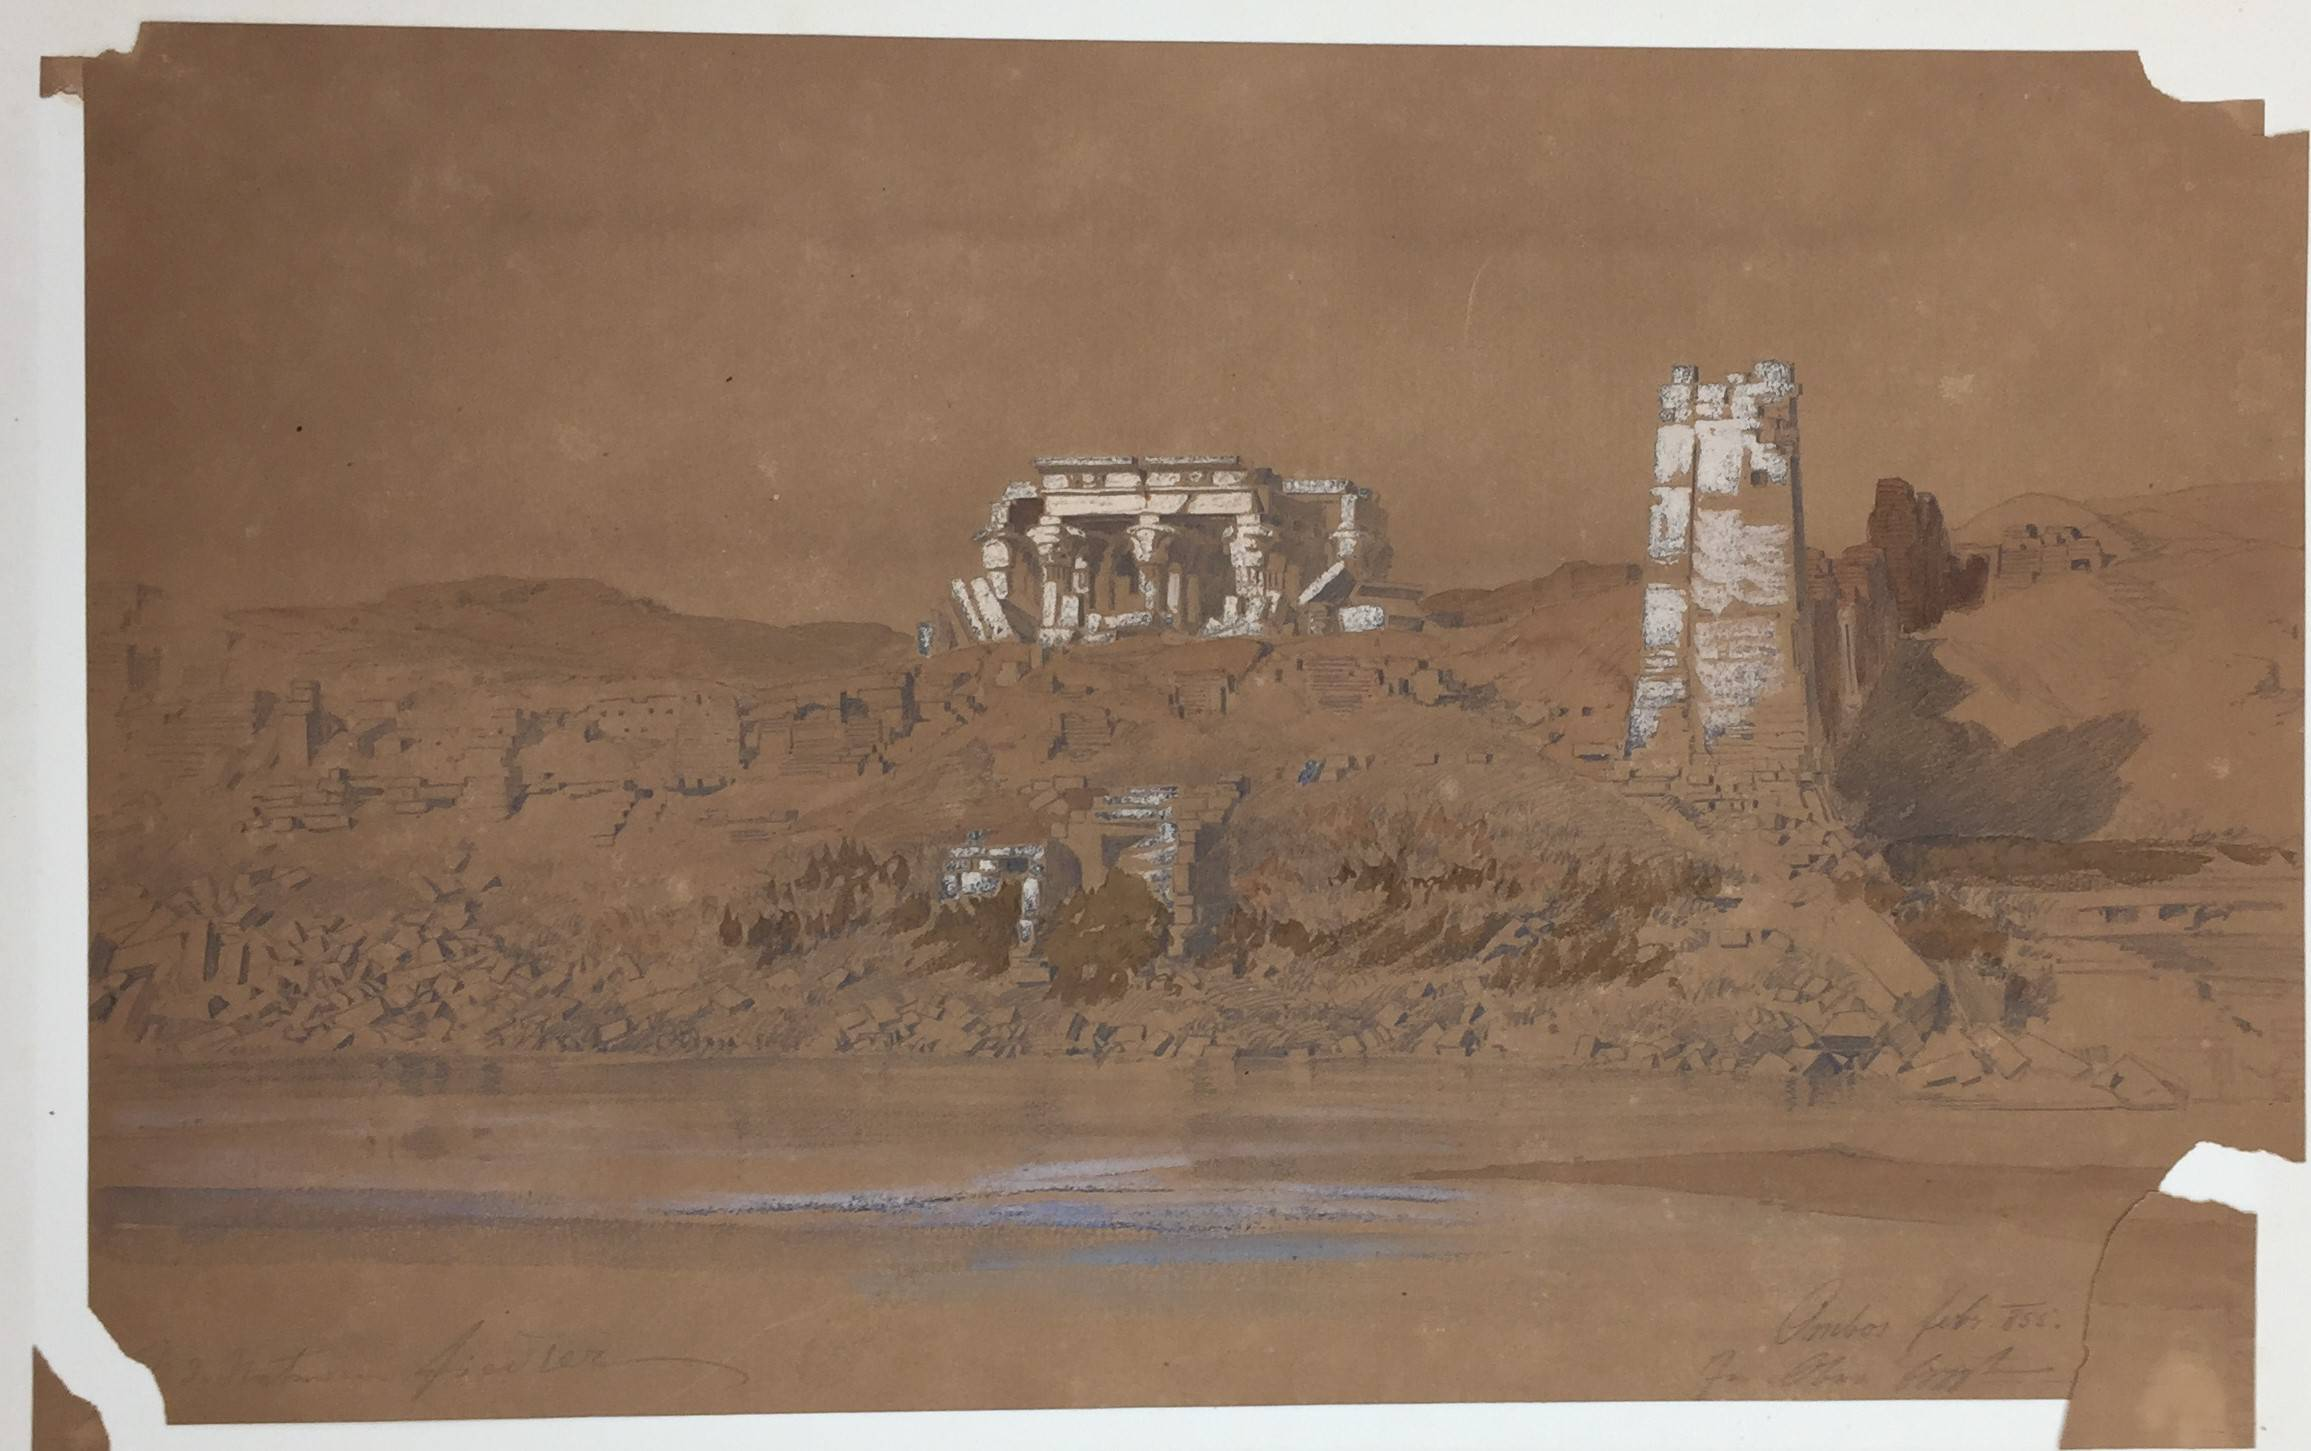 A sketch on brown paper of Kom Ombo temple in Egypt, with white highlights picking out the architecture